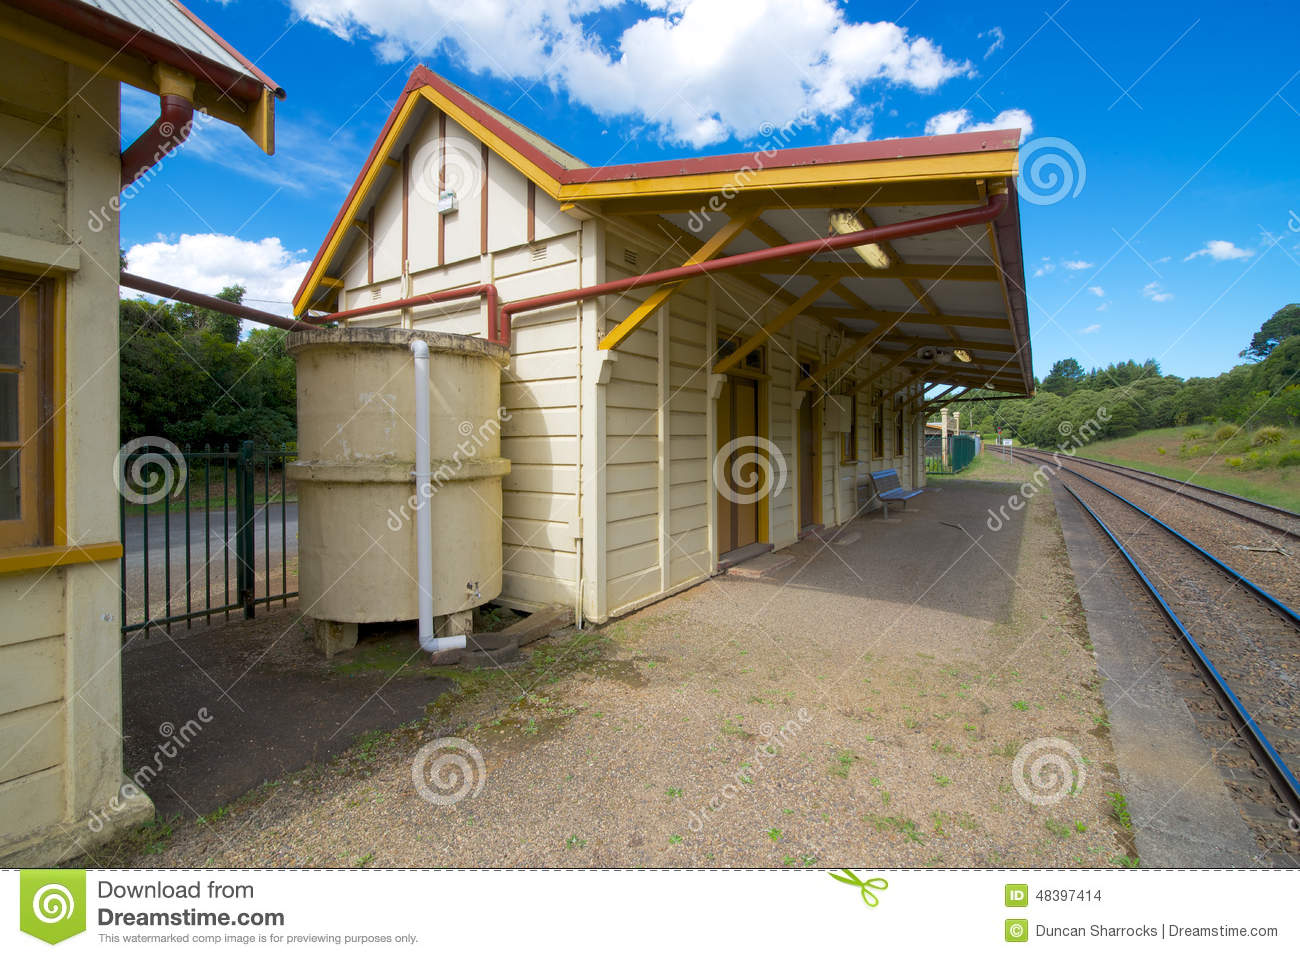 Platform Looking East, Robertson Railway Station, New South Wales.